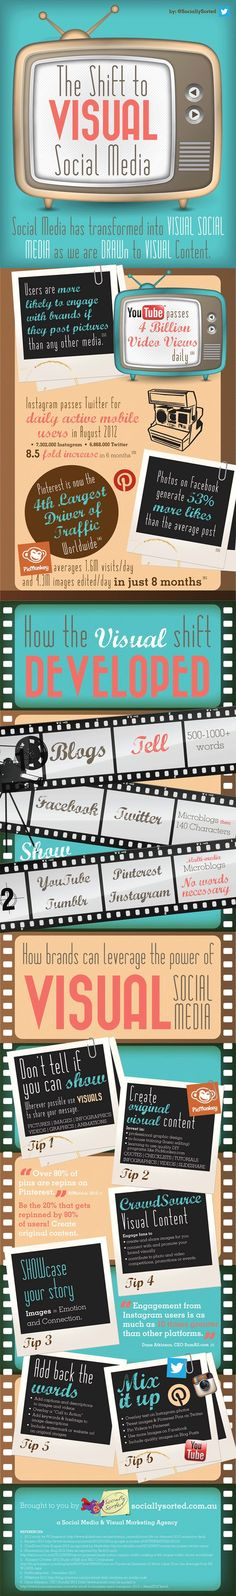 The Visual (r)Evolution of Social Media #infographic